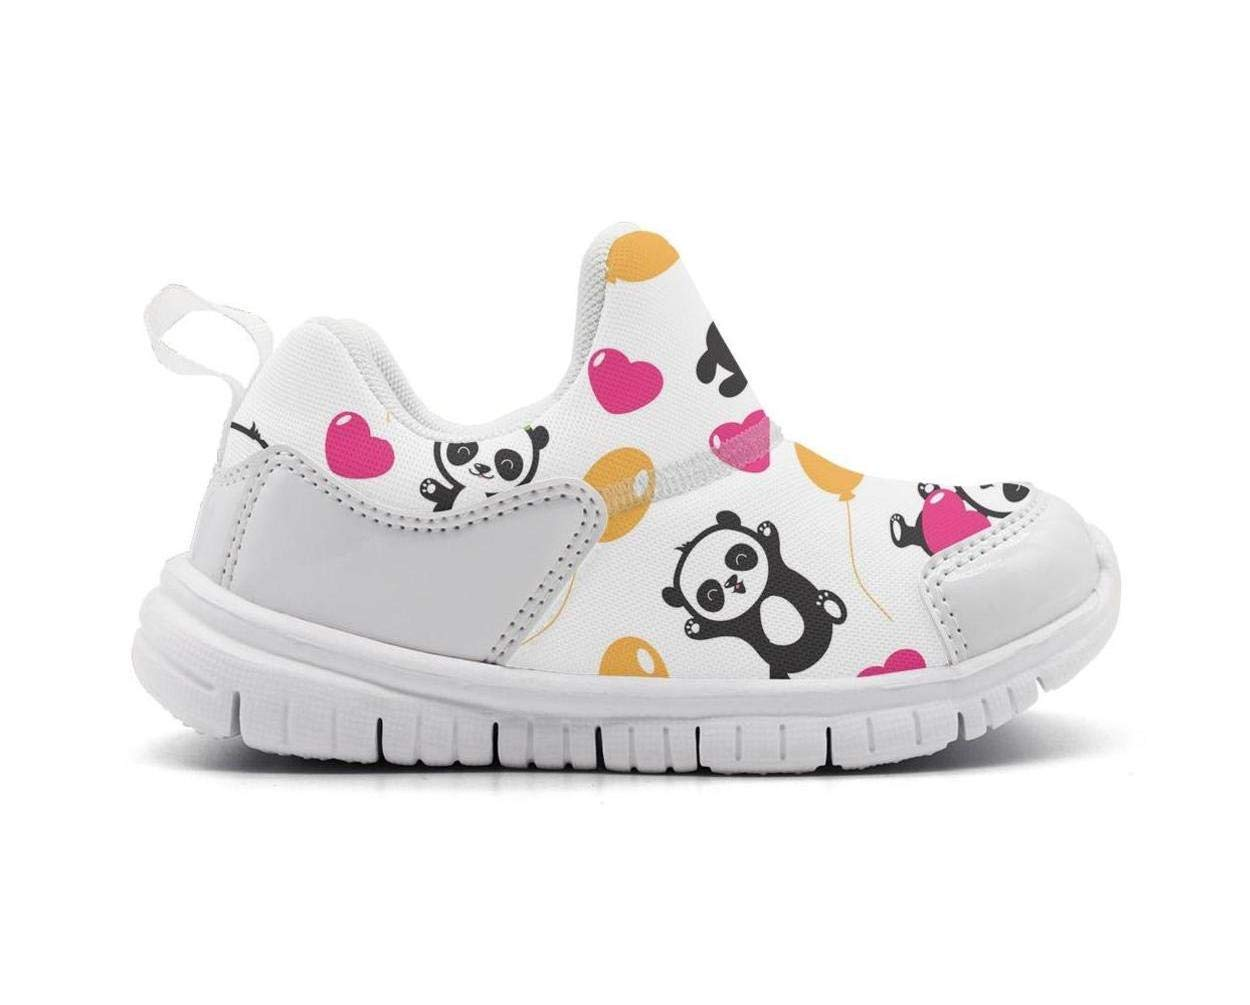 ONEYUAN Children Cat Faces-01 Kid Casual Lightweight Sport Shoes Sneakers Walking Athletic Shoes